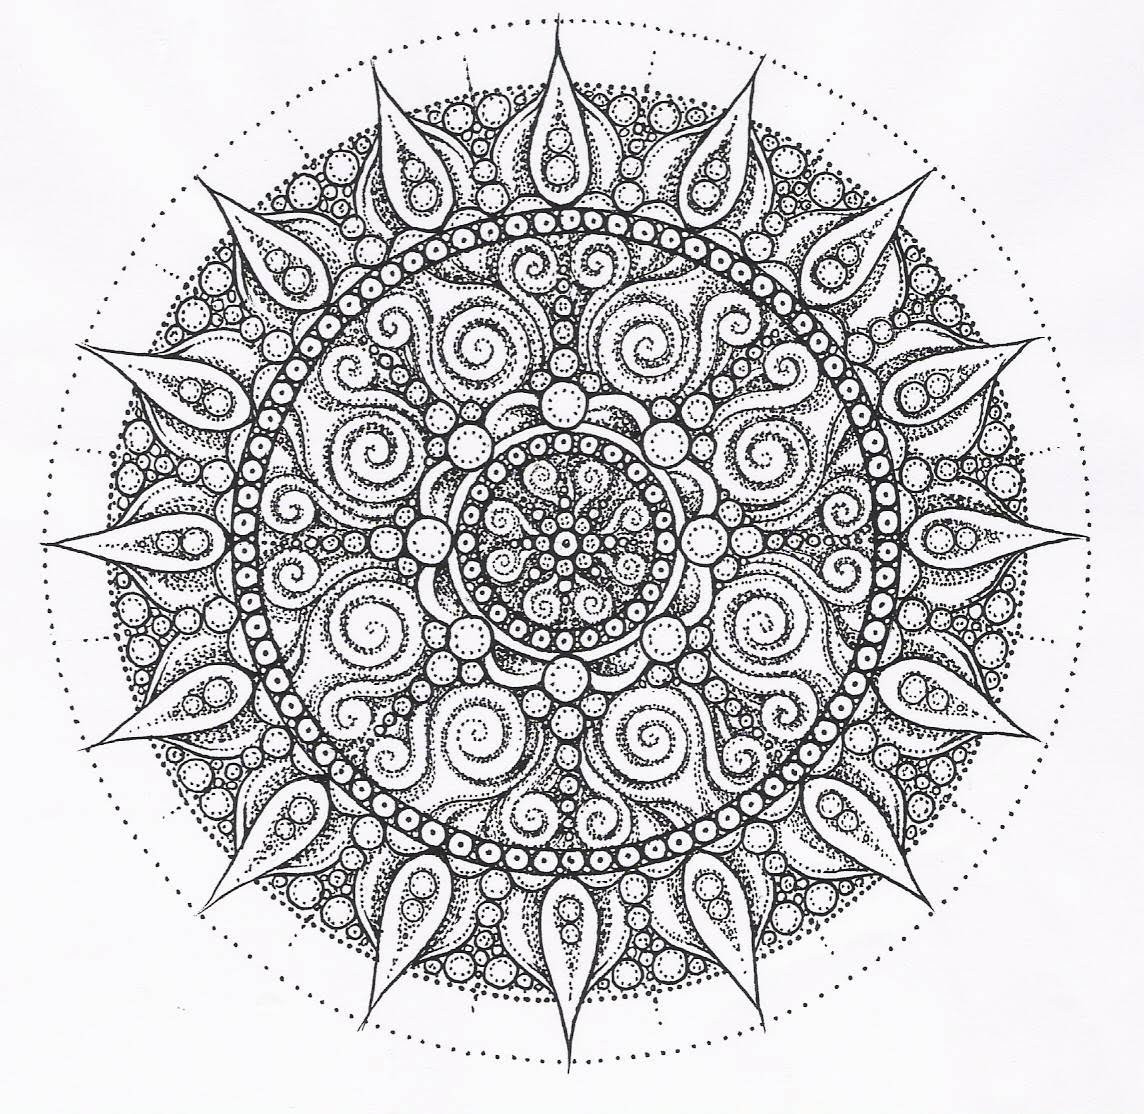 Free Printable Mandala Coloring Pages For Adults  free printable mandala coloring pages for adults